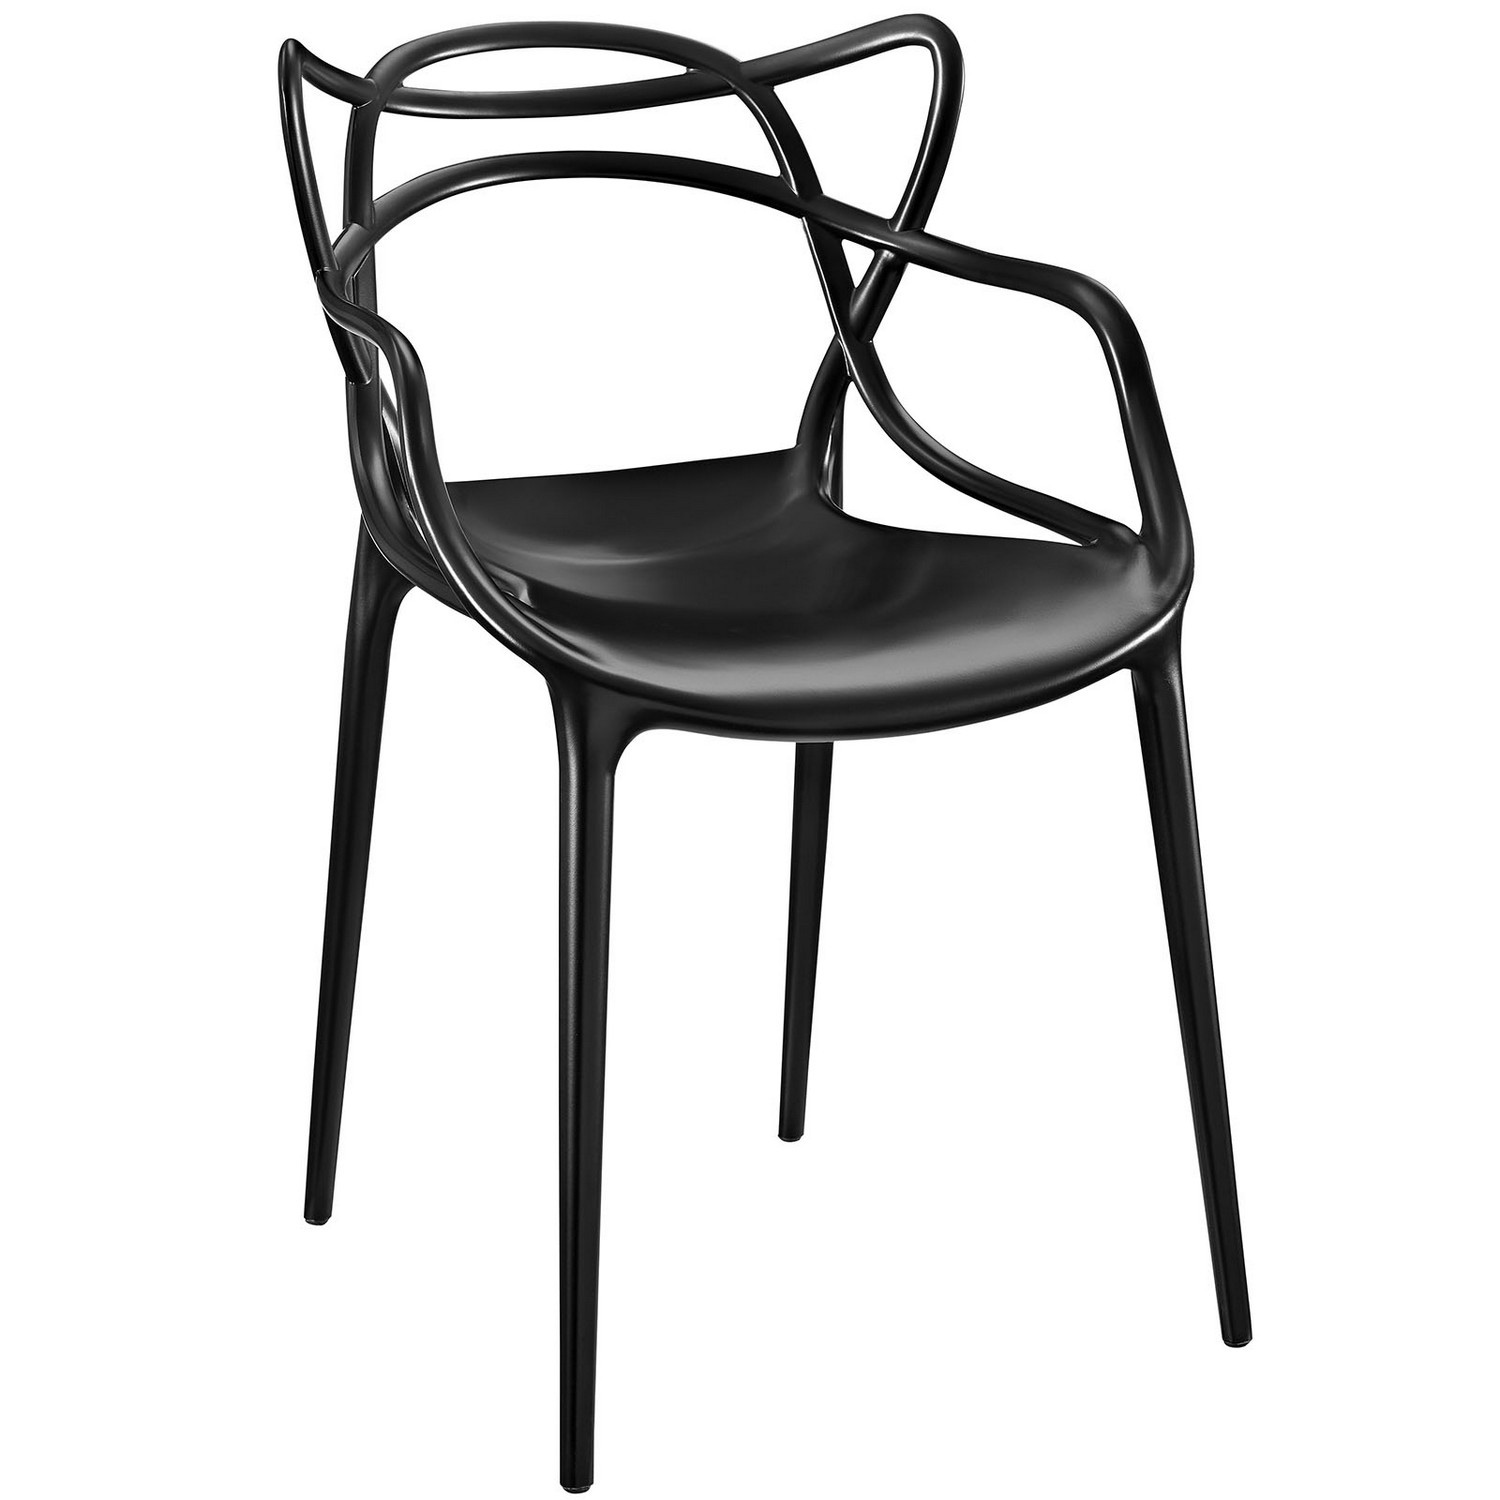 Modway Entangled Dining Arm Chair - Black